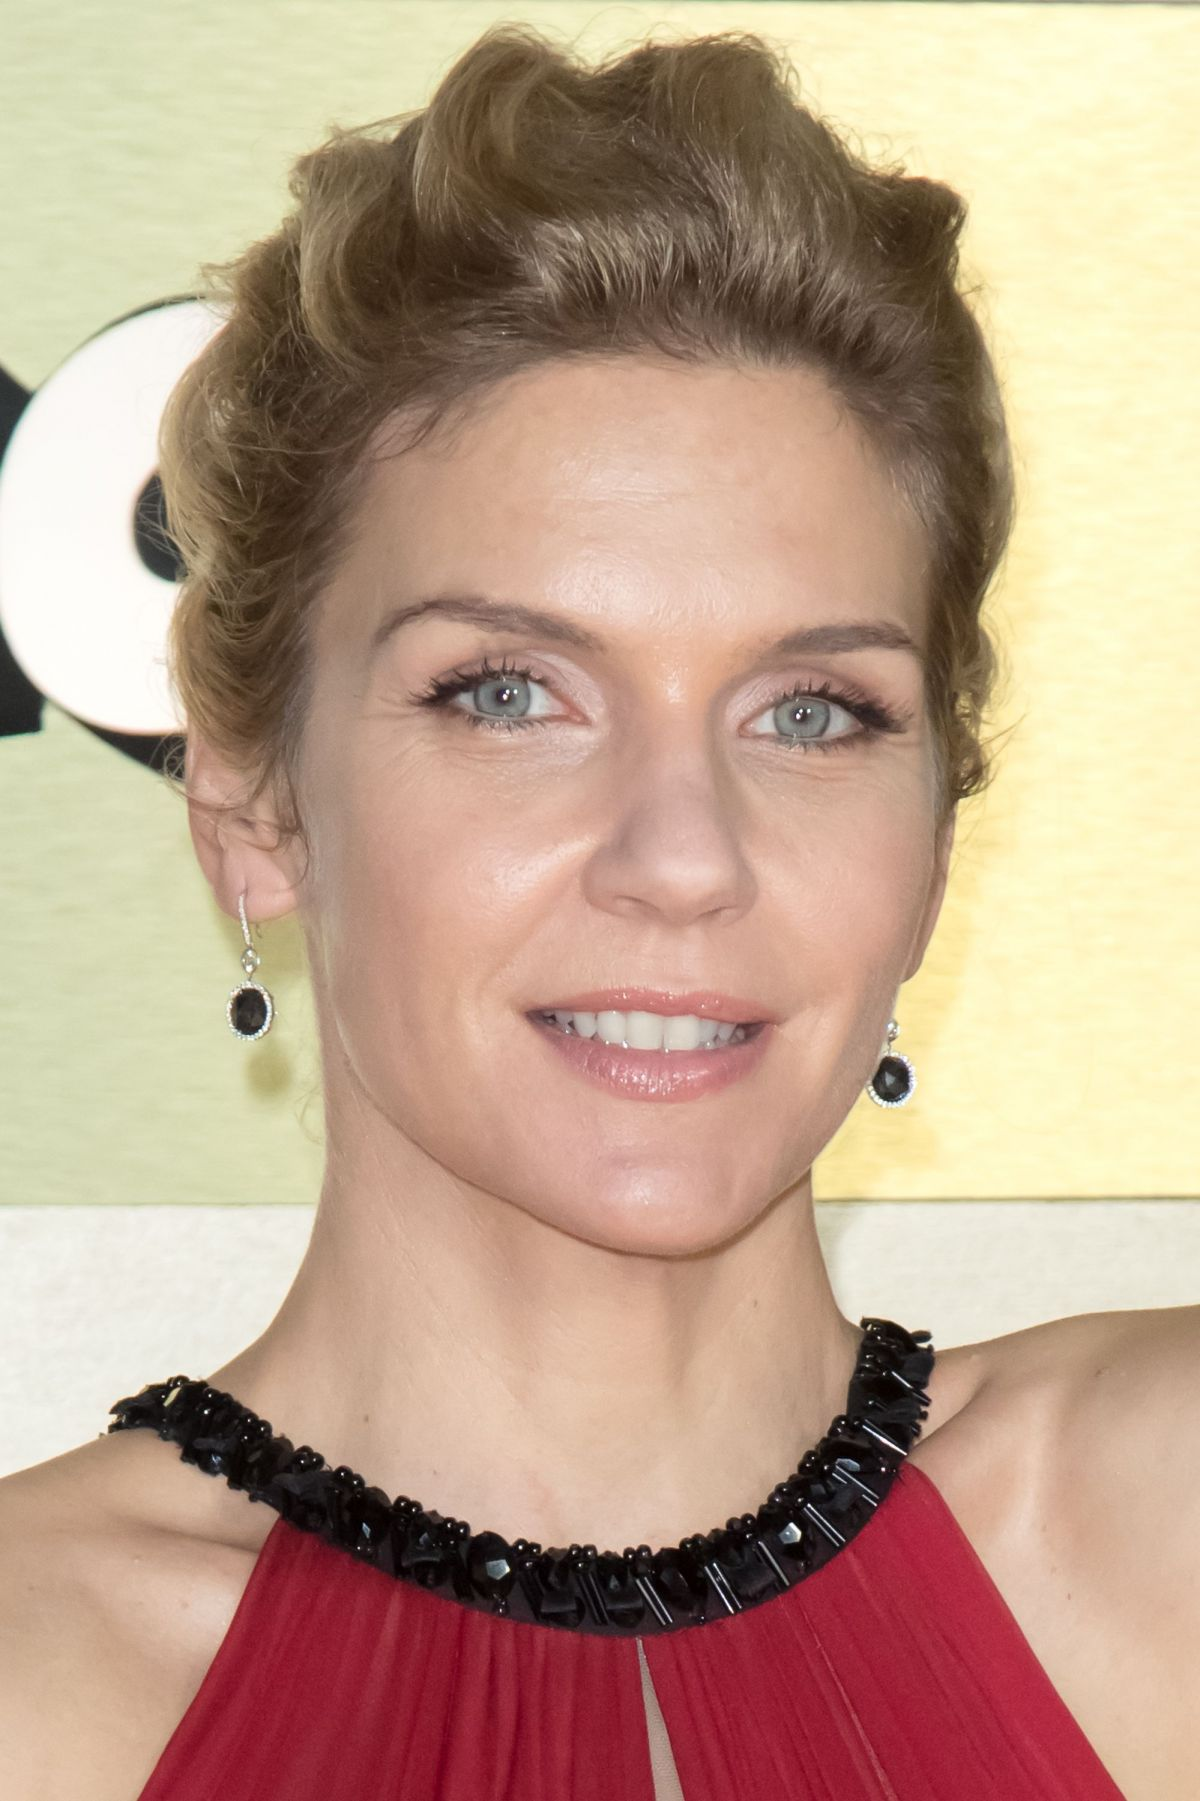 RHEA SEEHORN at AMC Emmy Awards After-party in Los Angeles